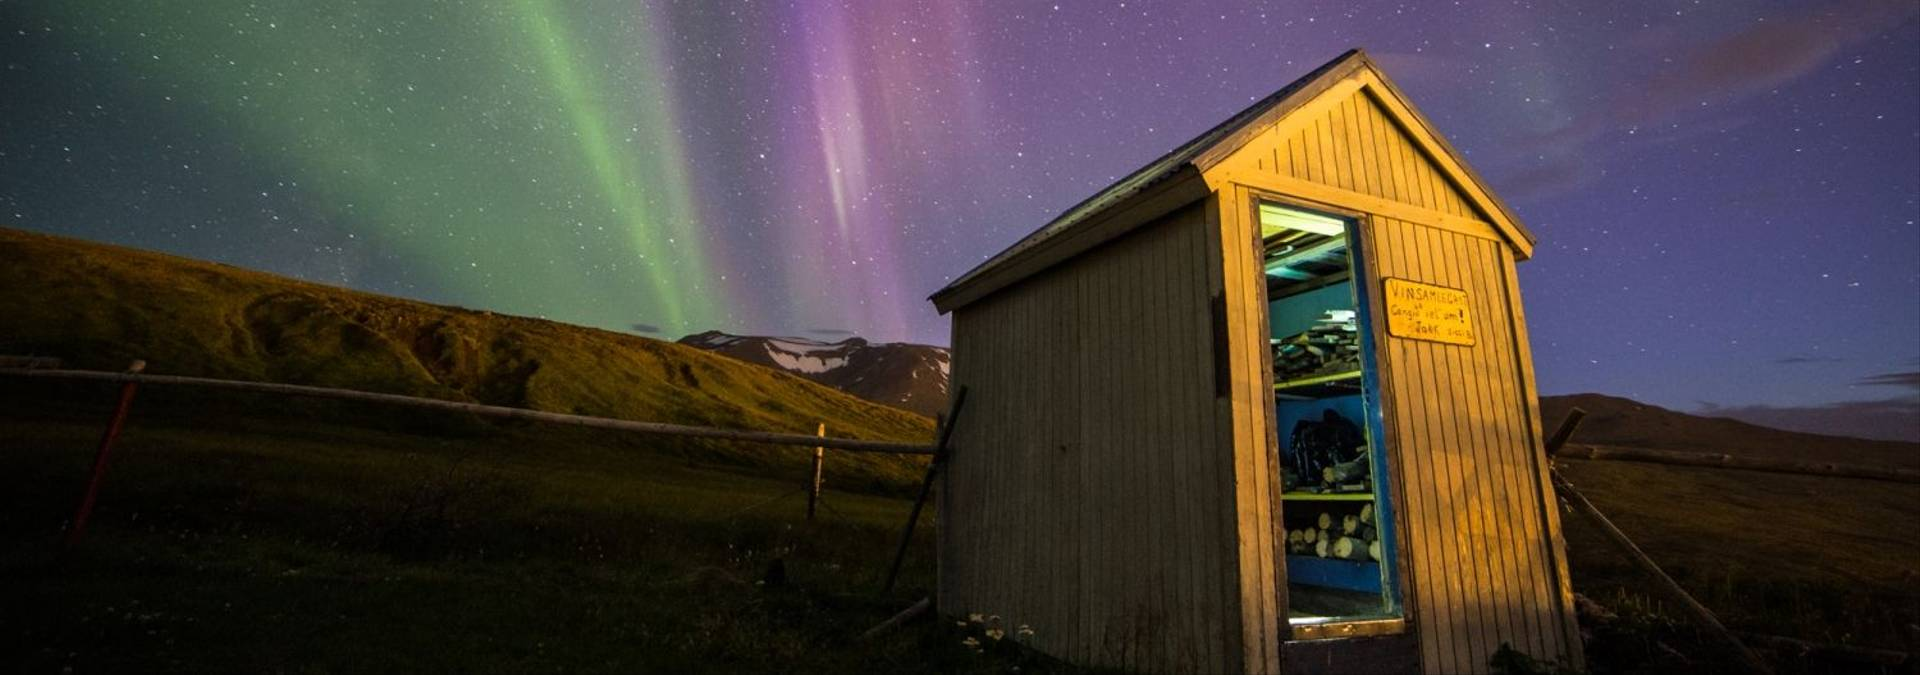 Northern Lights in North Iceland.jpg